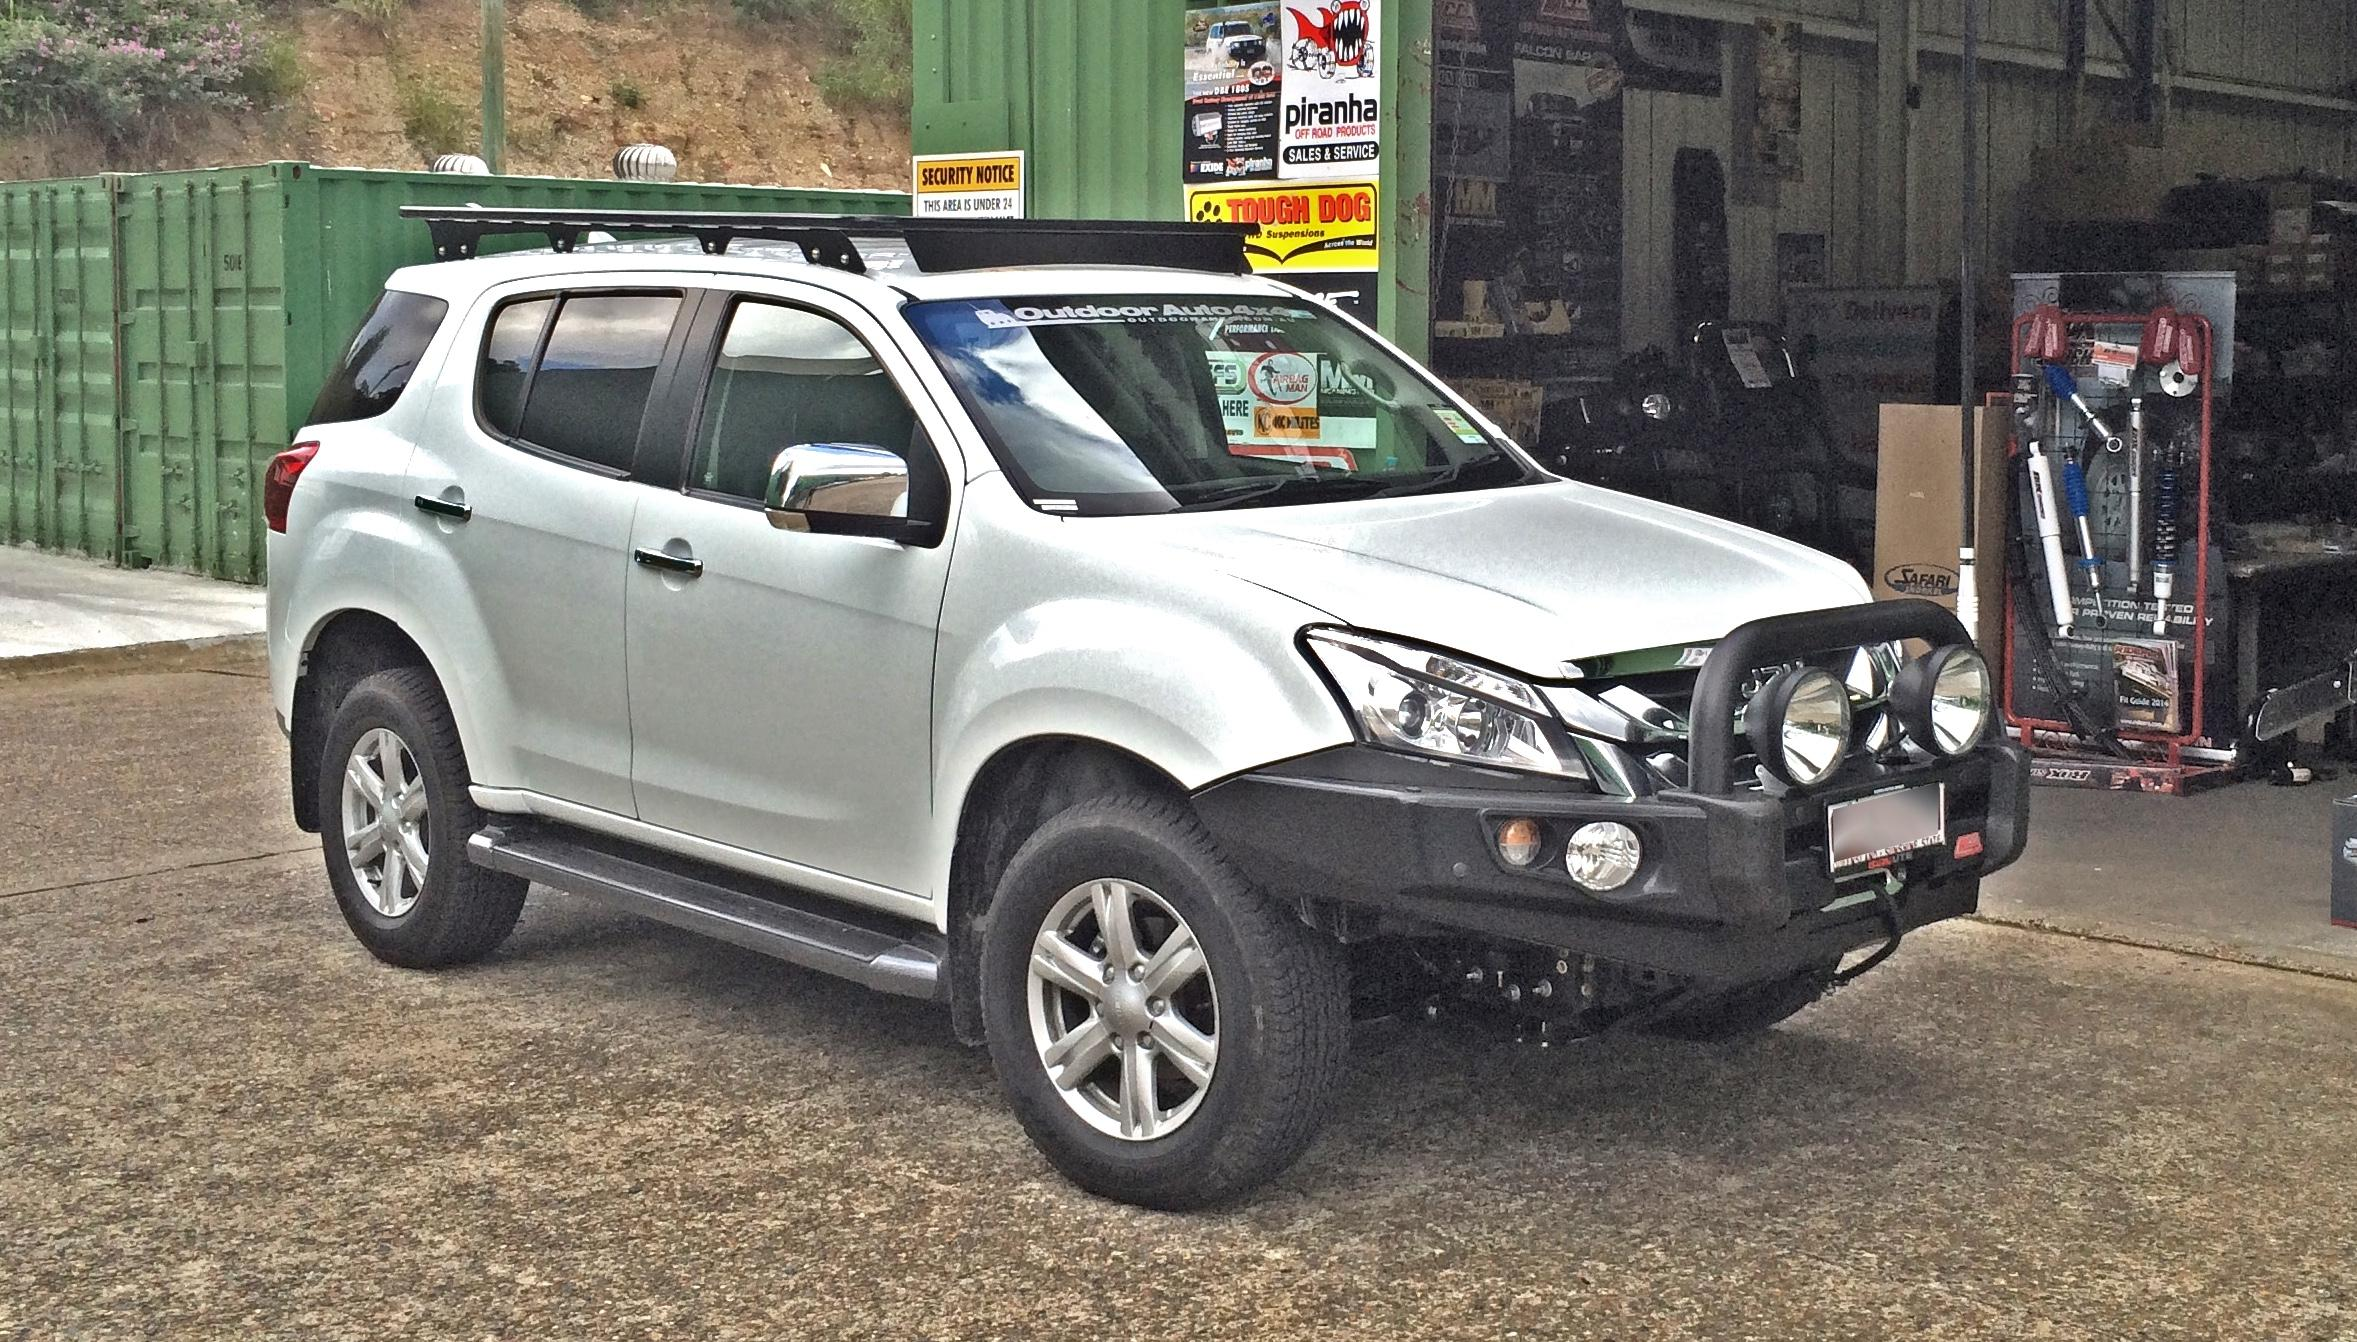 New Isuzu Mux 2014 Vs Montero Sport 2014 Release Reviews And Models ...